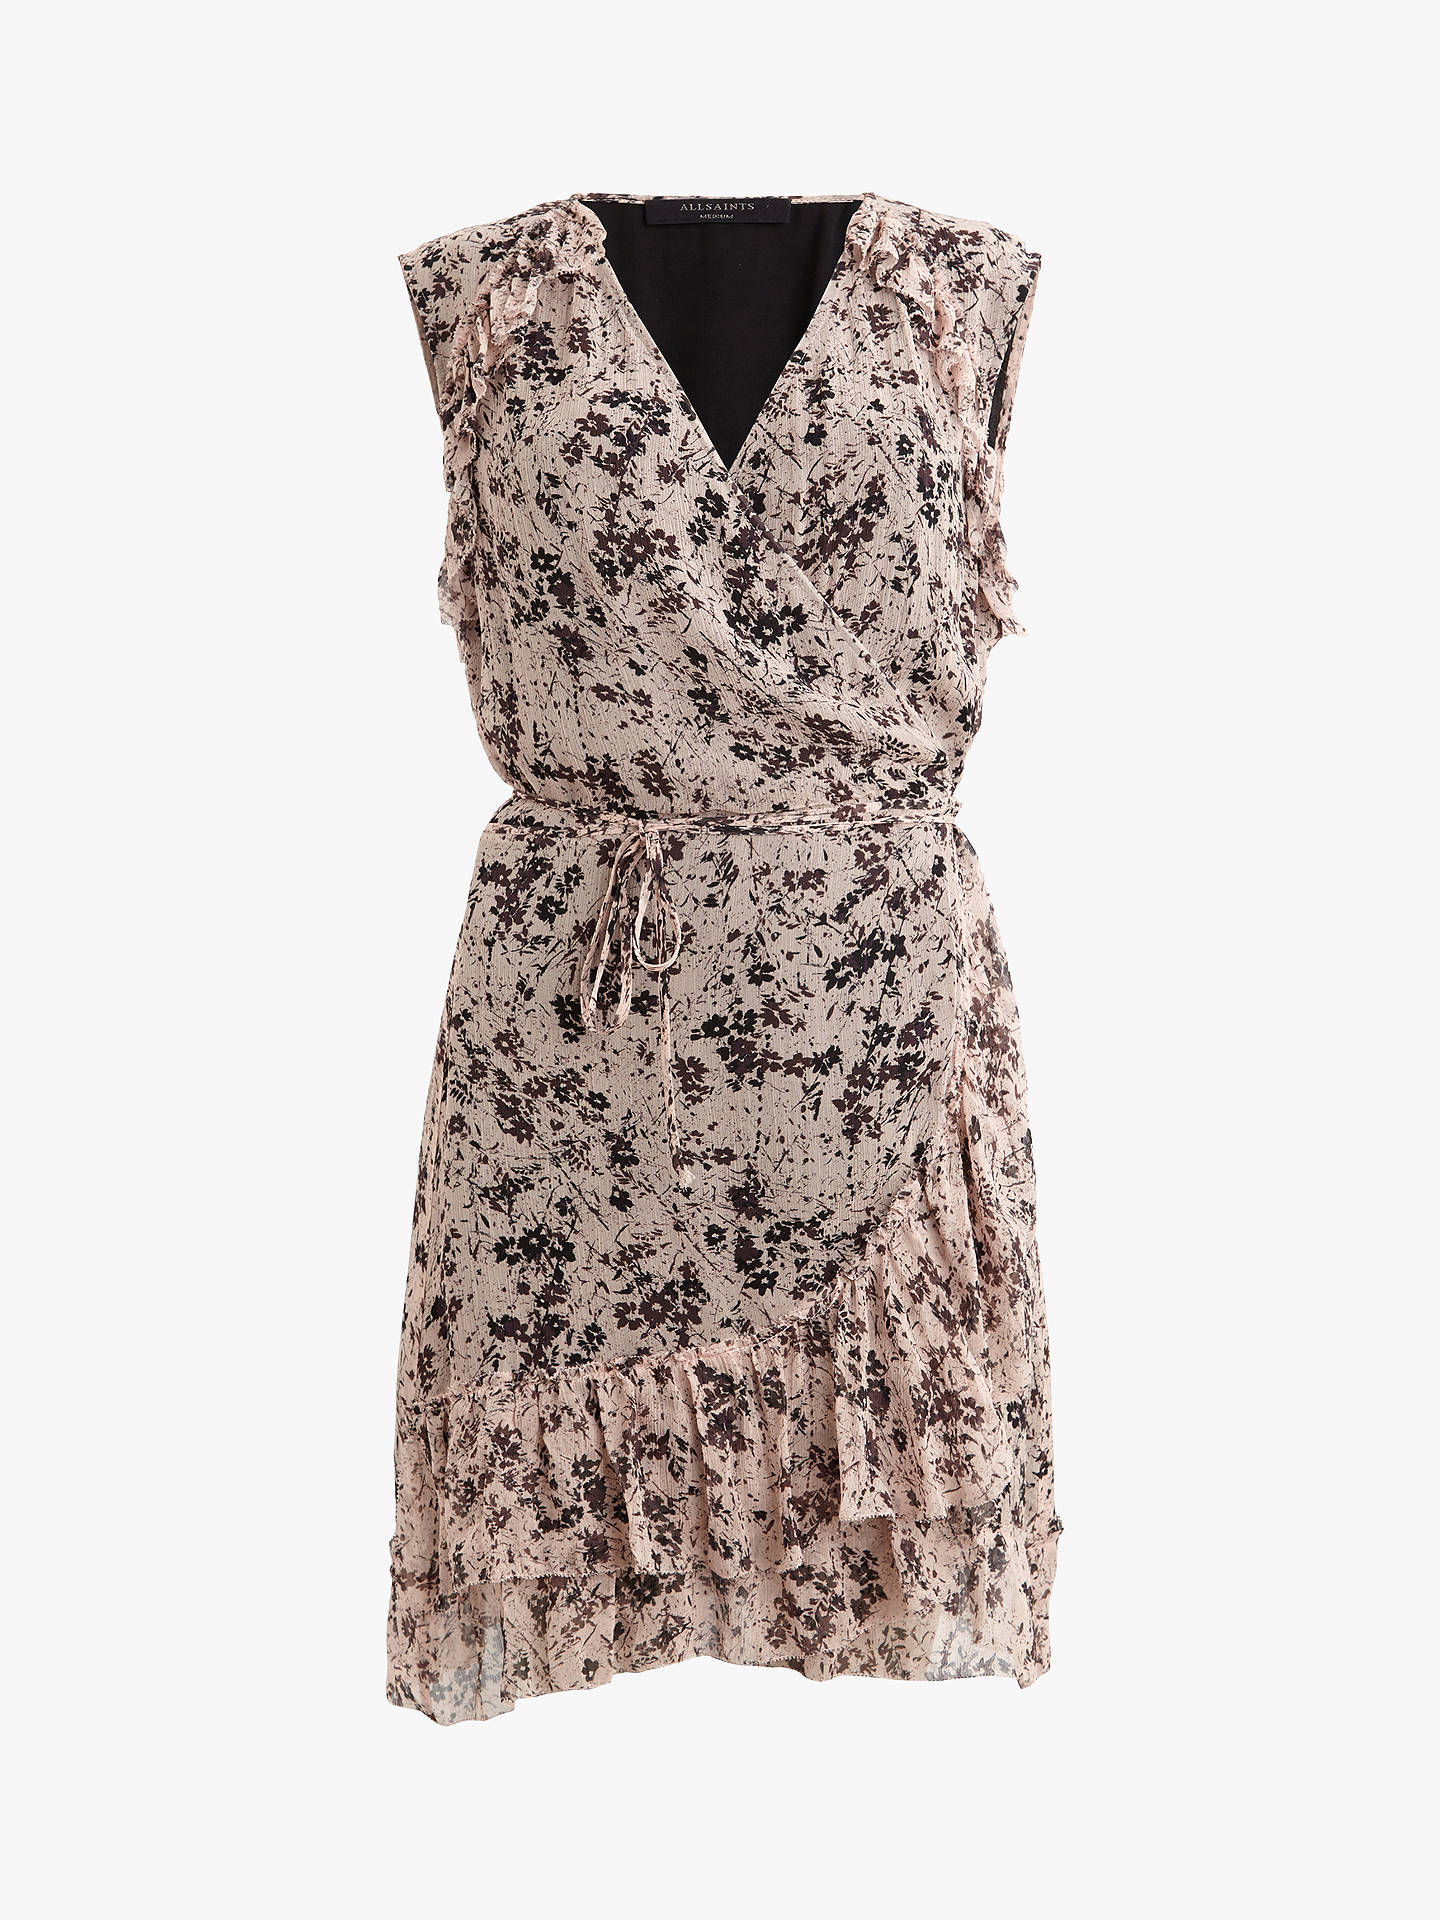 BuyAllSaints Priya Dress, Multi, L Online at johnlewis.com